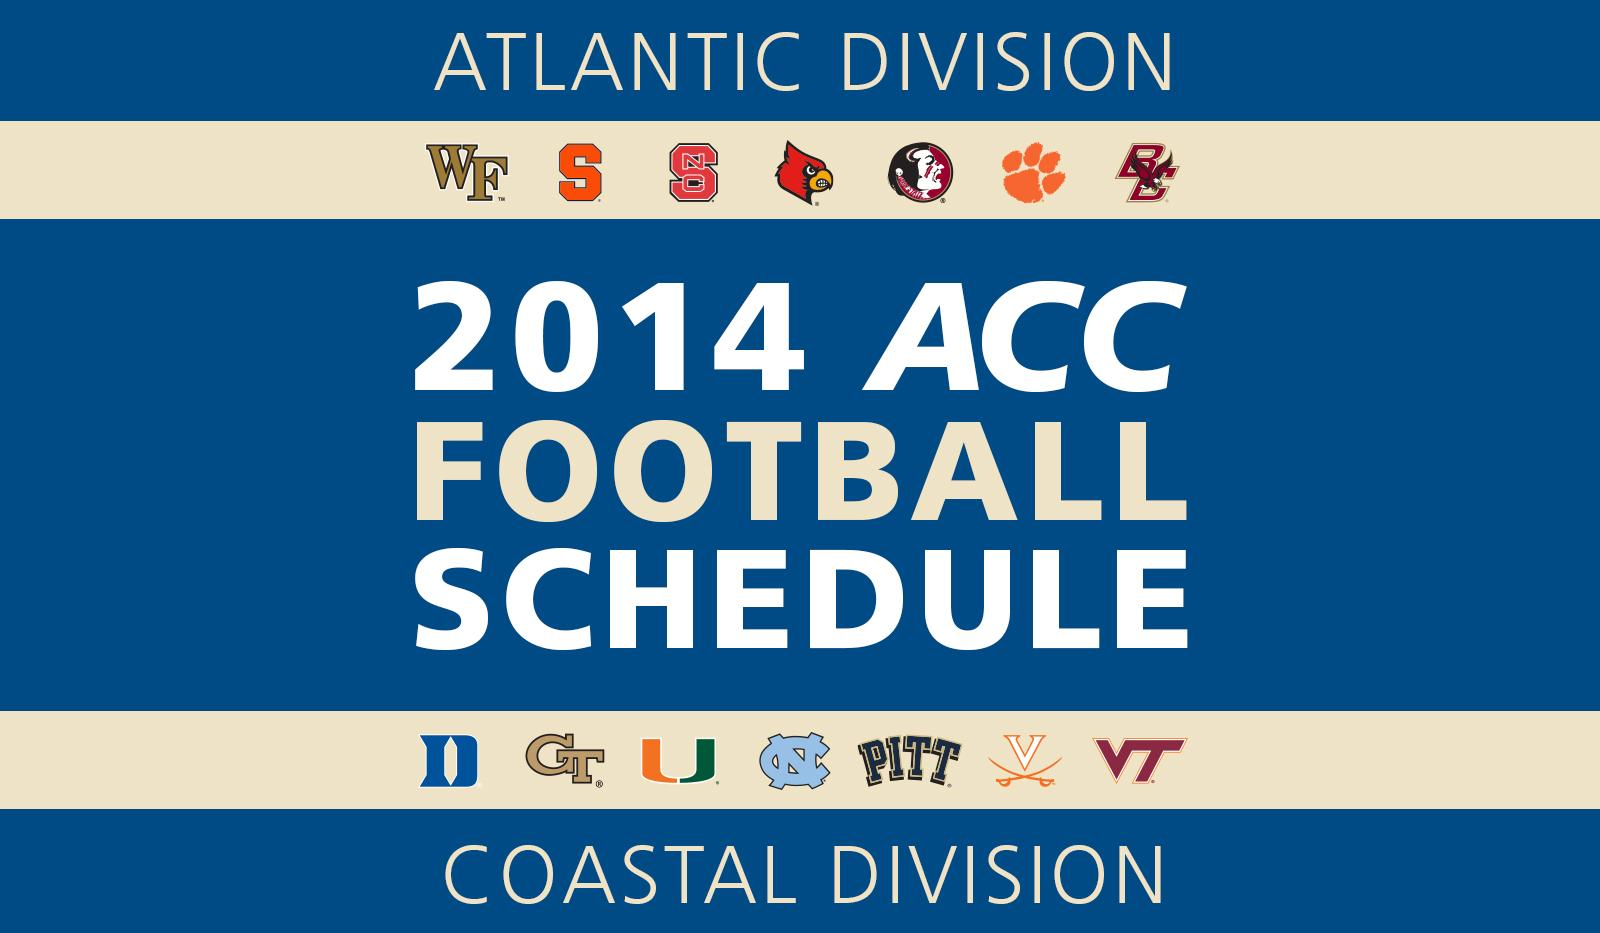 2014 ACC Football Schedule Announcement 001